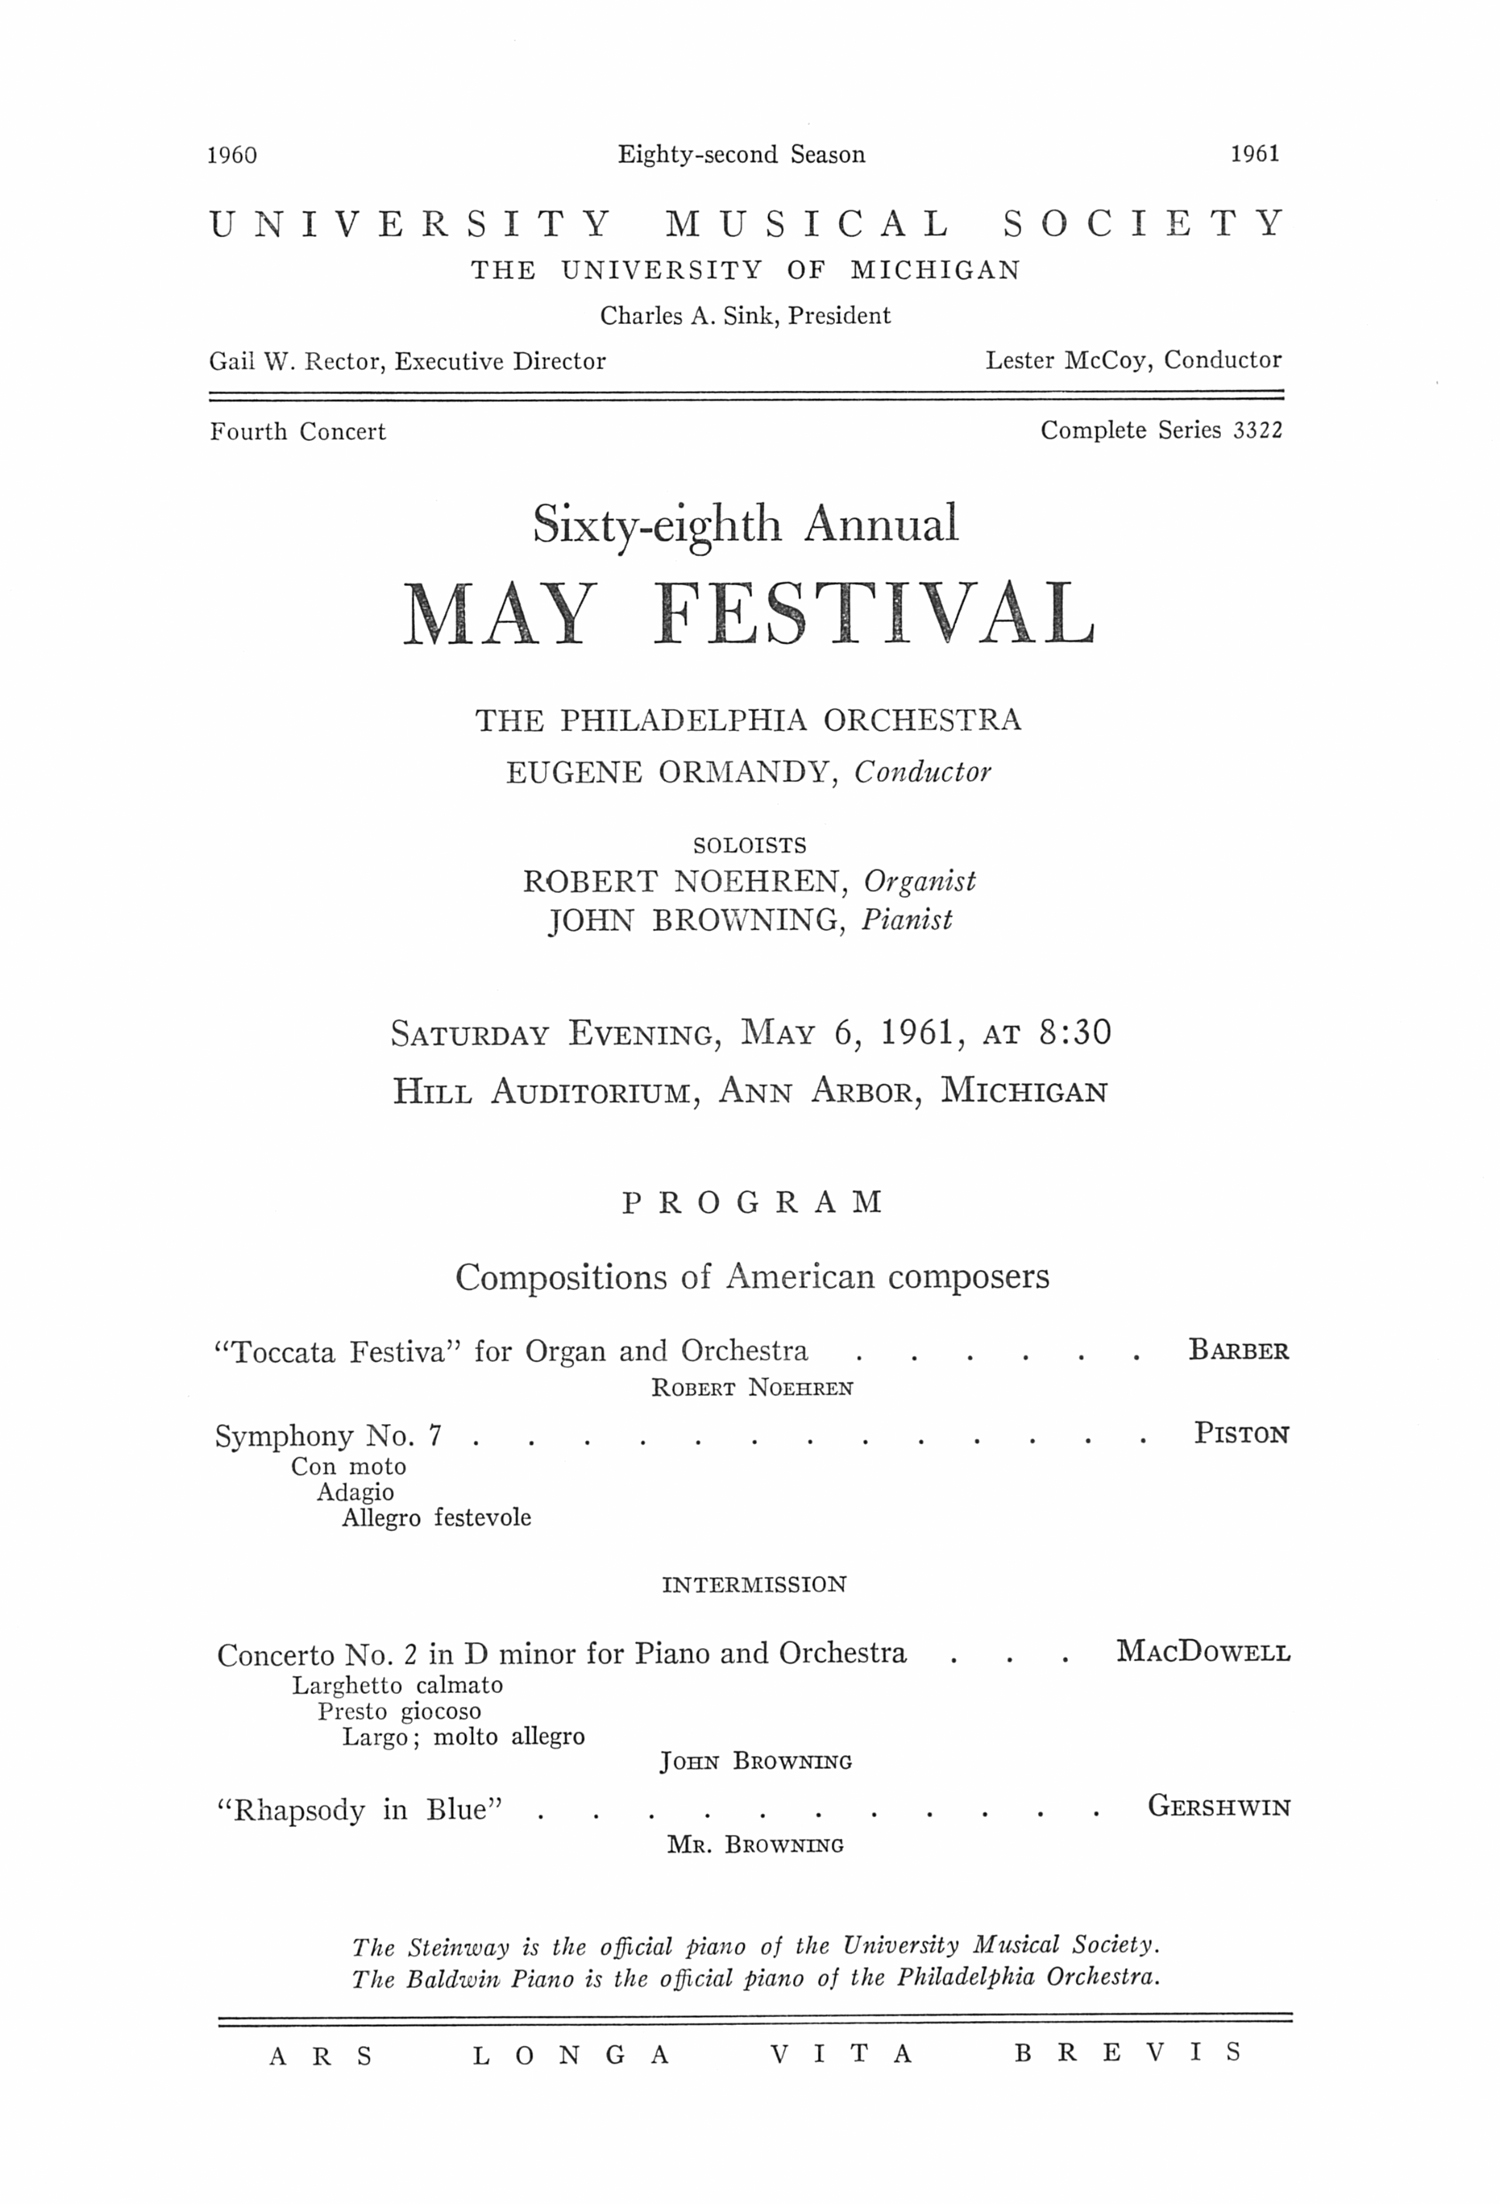 UMS Concert Program, May 6, 1961: Sixty-eighth Annual May Festival -- The Philadelphia Orchestra image